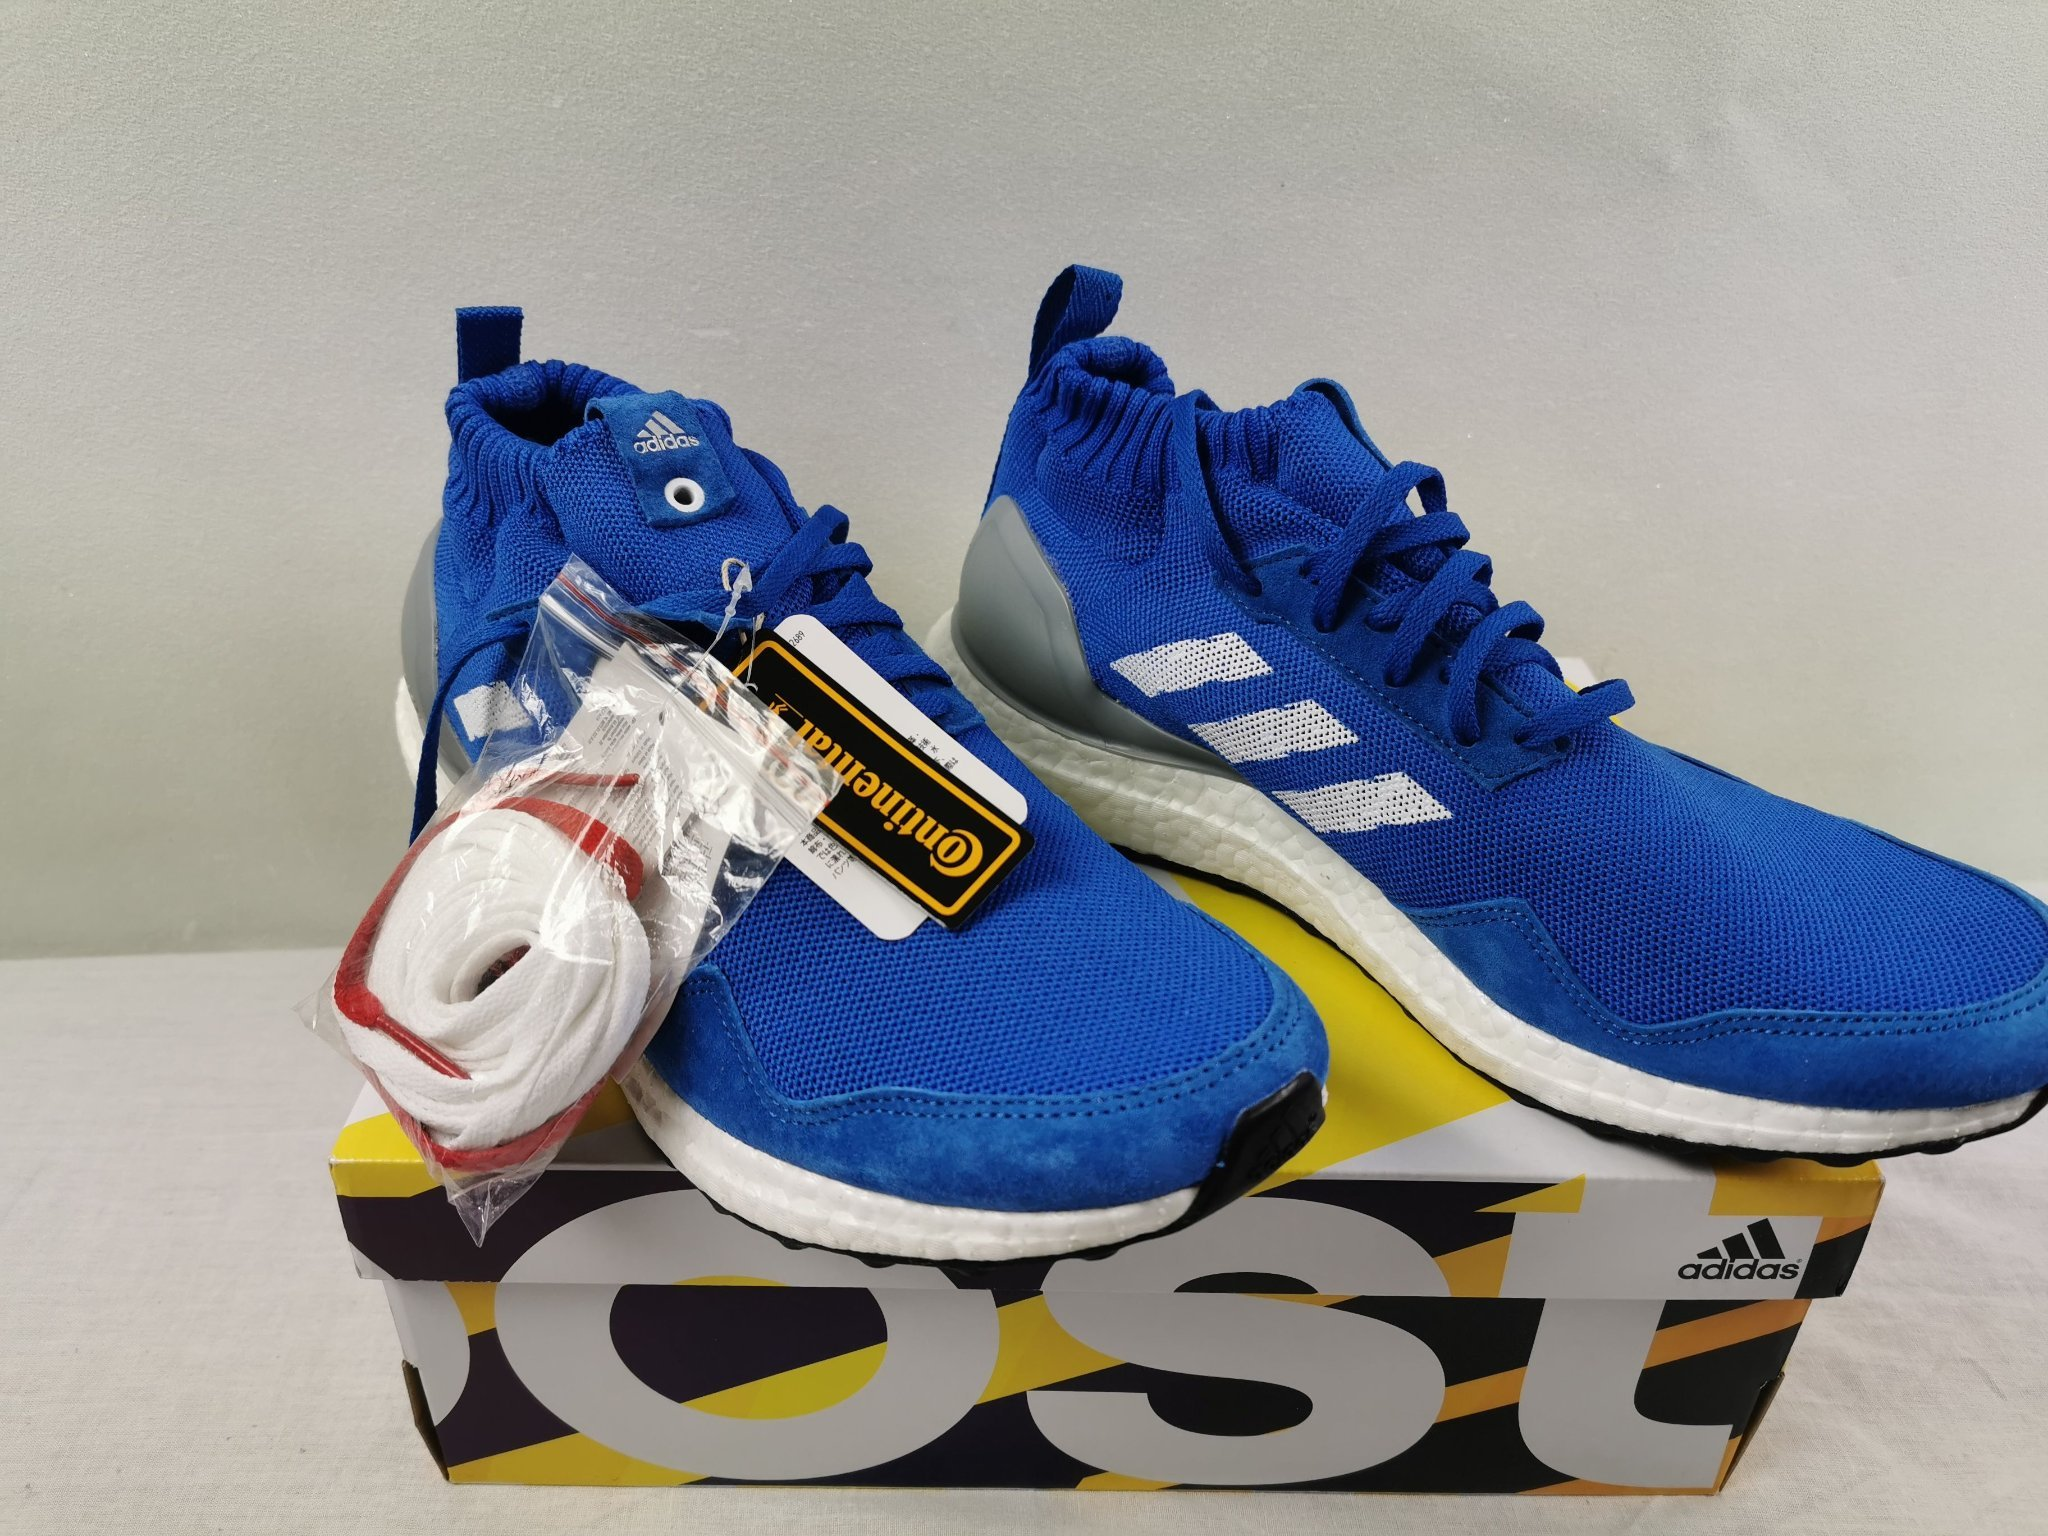 adidas sonic boost running shoes,adidas shell tops kids